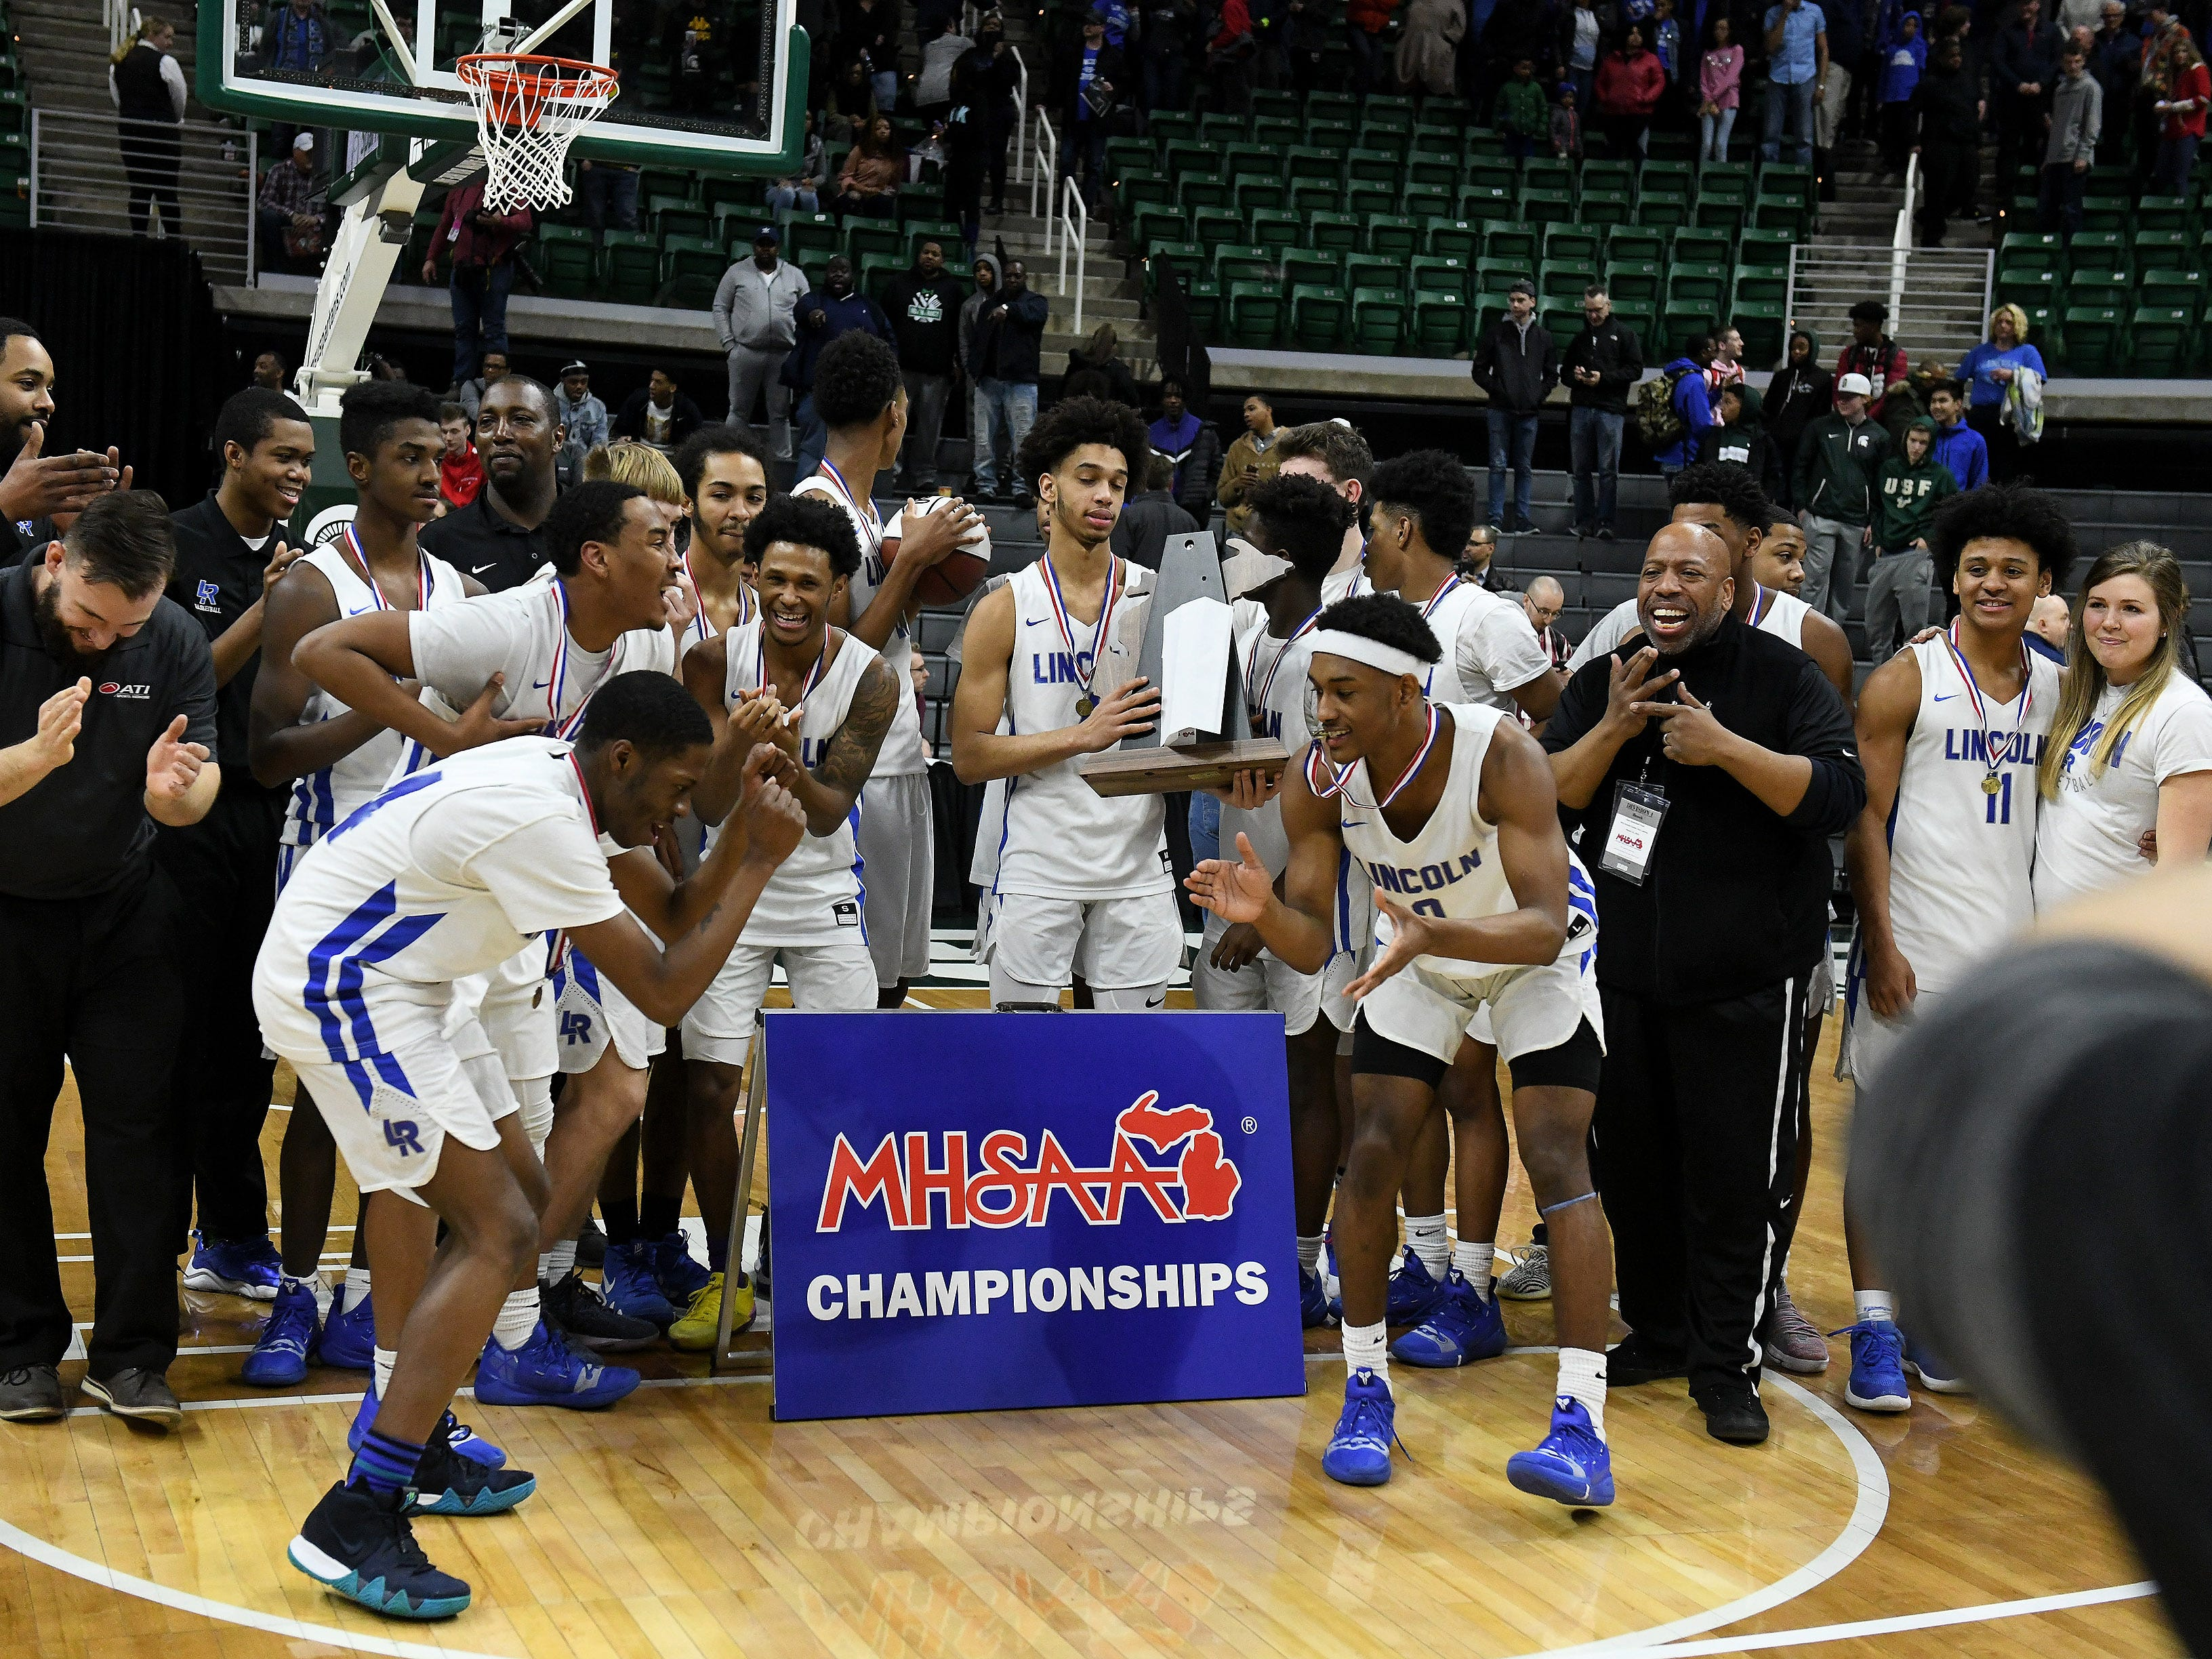 Lincoln guard Tahj Chatman (0) and Lincoln guard forward Aaron Hurling, left, dance after their team is presented with the trophy.